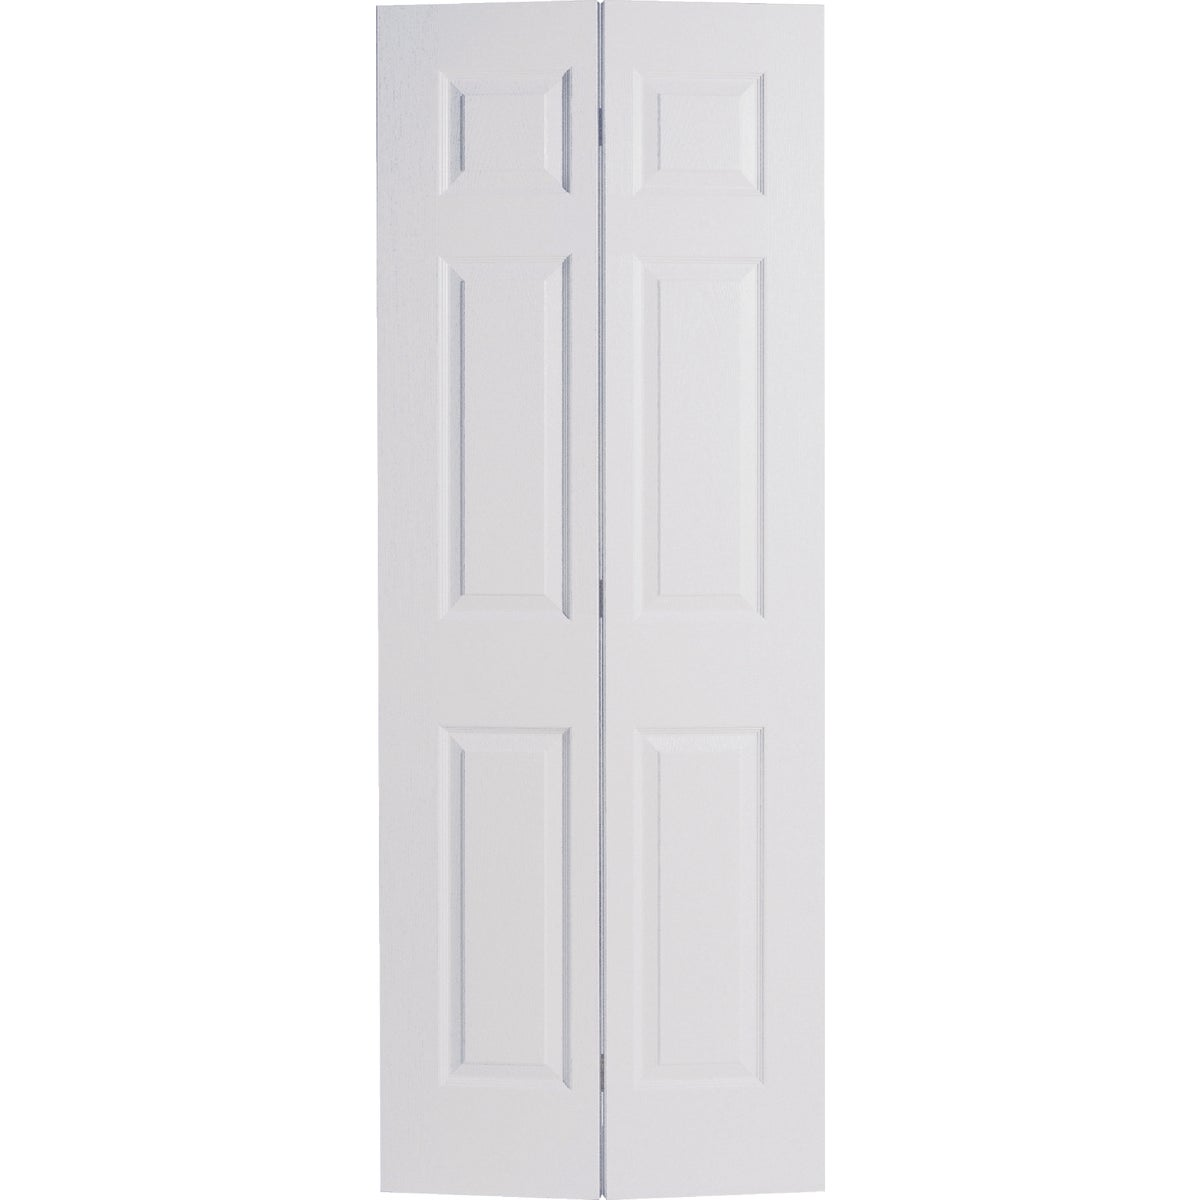 5/0 1-3/8 6PN TX BF DOOR -  by Masonite